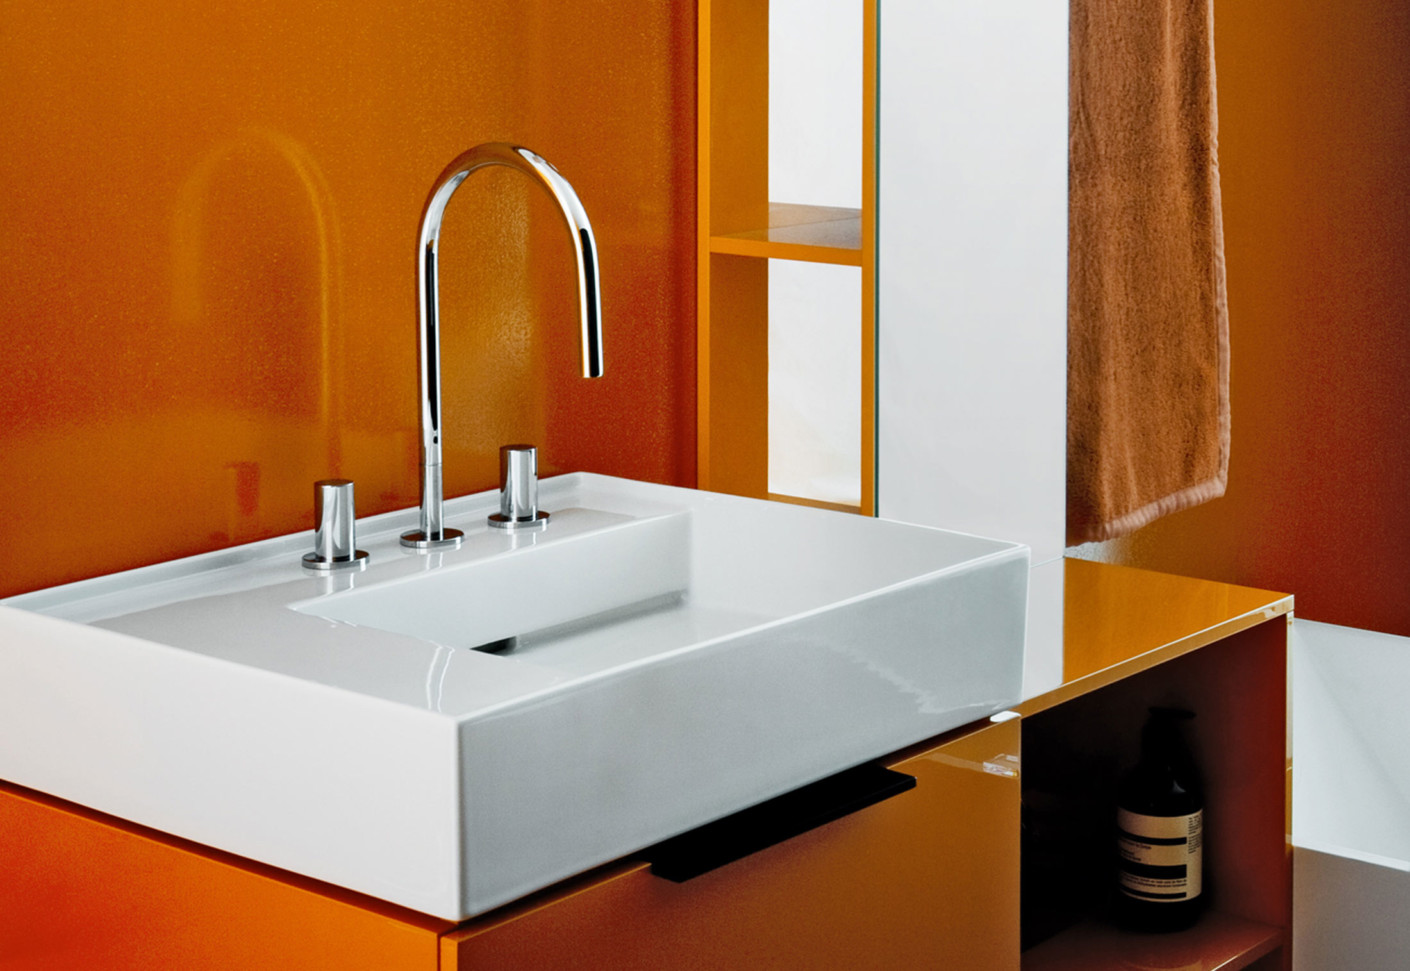 kartell by laufen washbasin mixer 3 hole by laufen stylepark. Black Bedroom Furniture Sets. Home Design Ideas